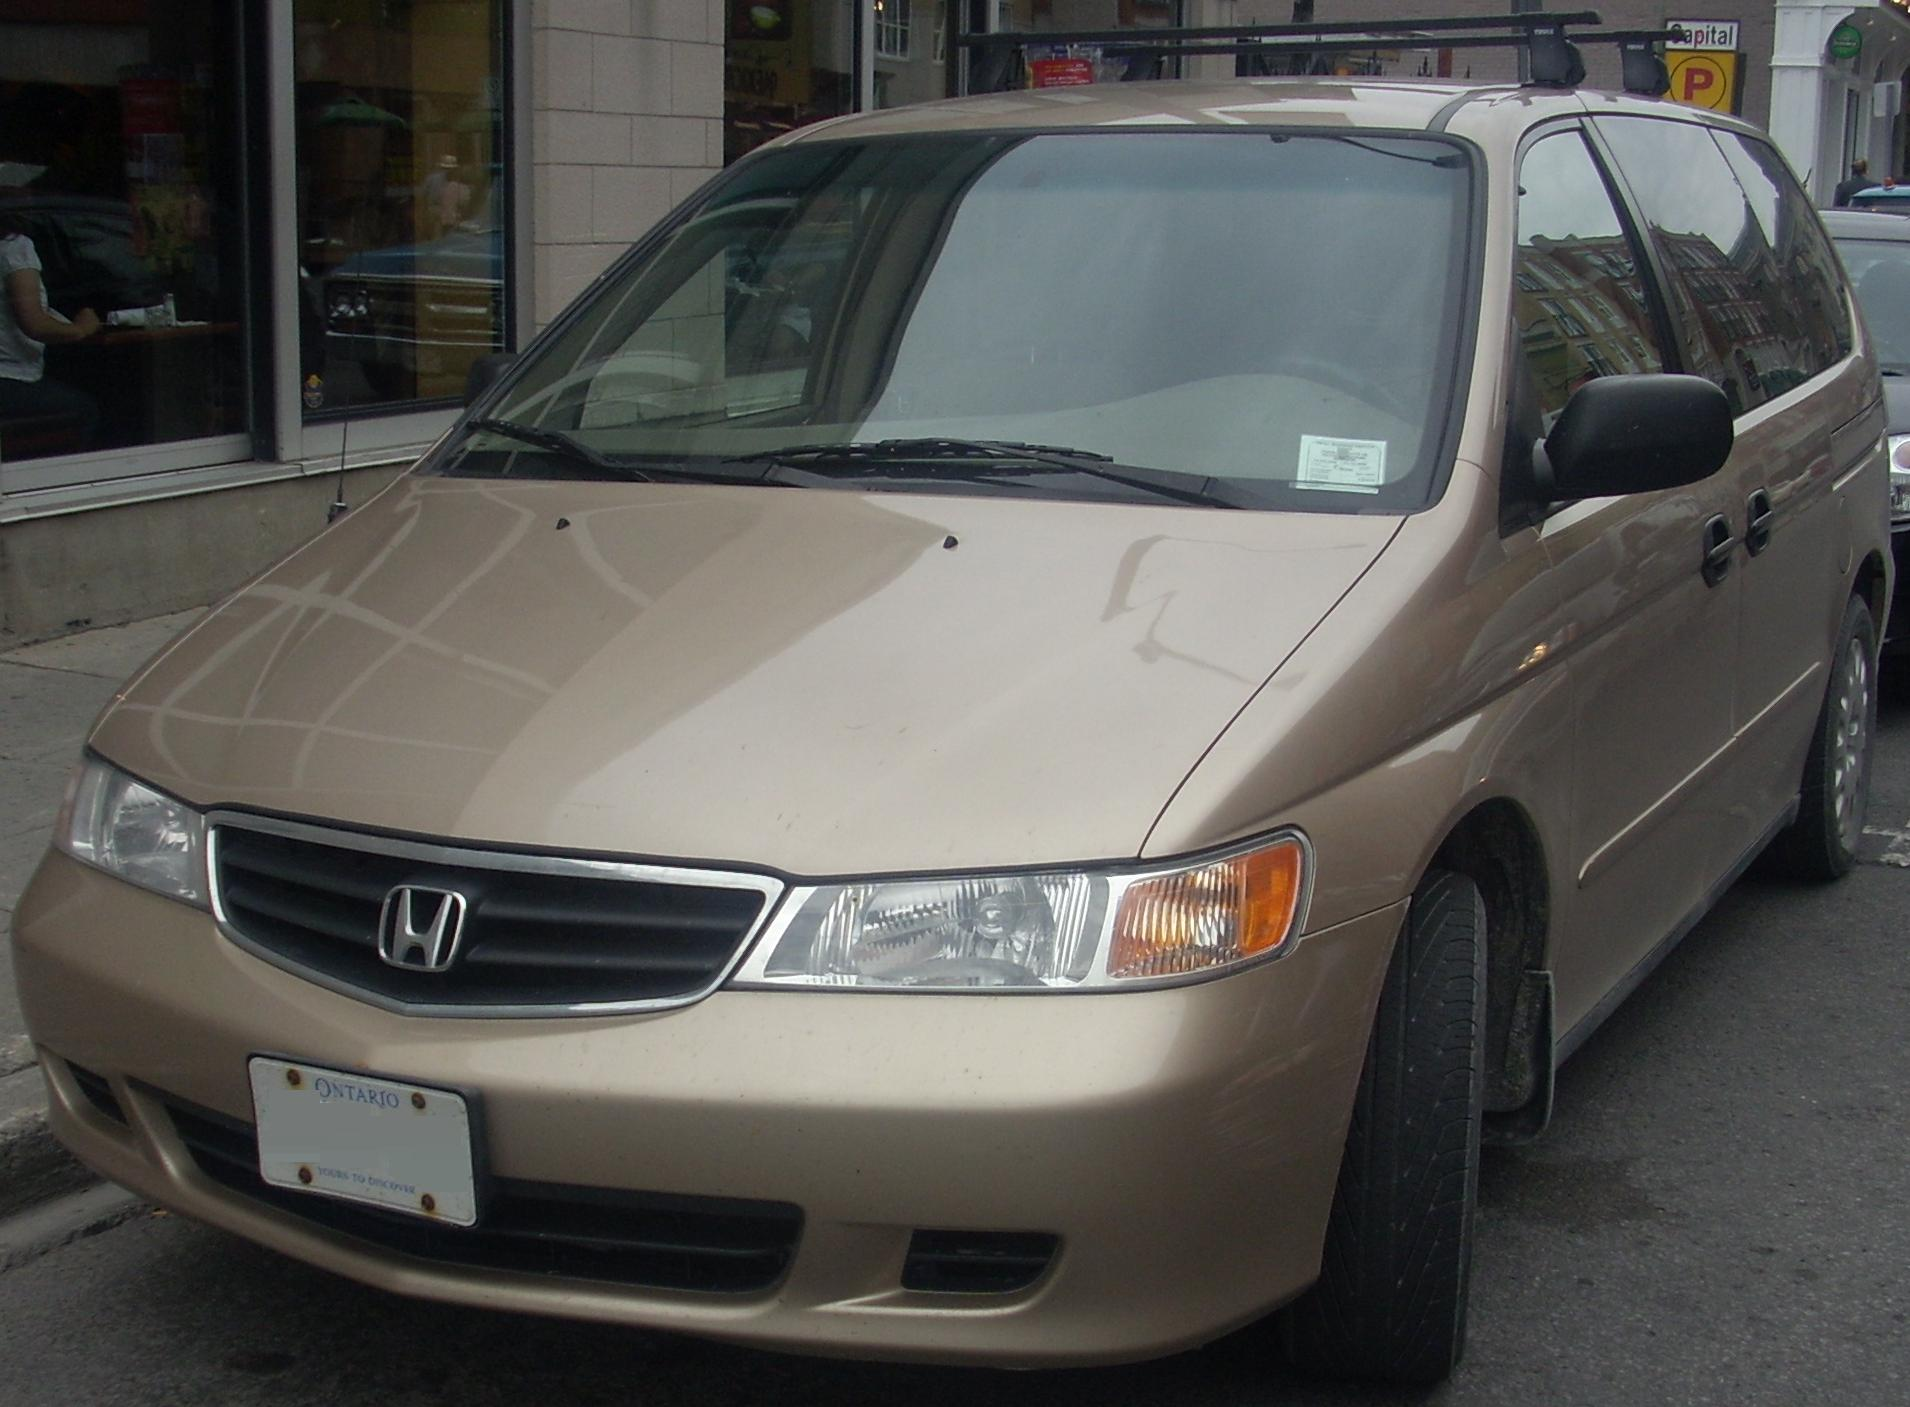 Honda Accord Tourer Fuse Box : Honda pilot touring fuse box hyundai sonata